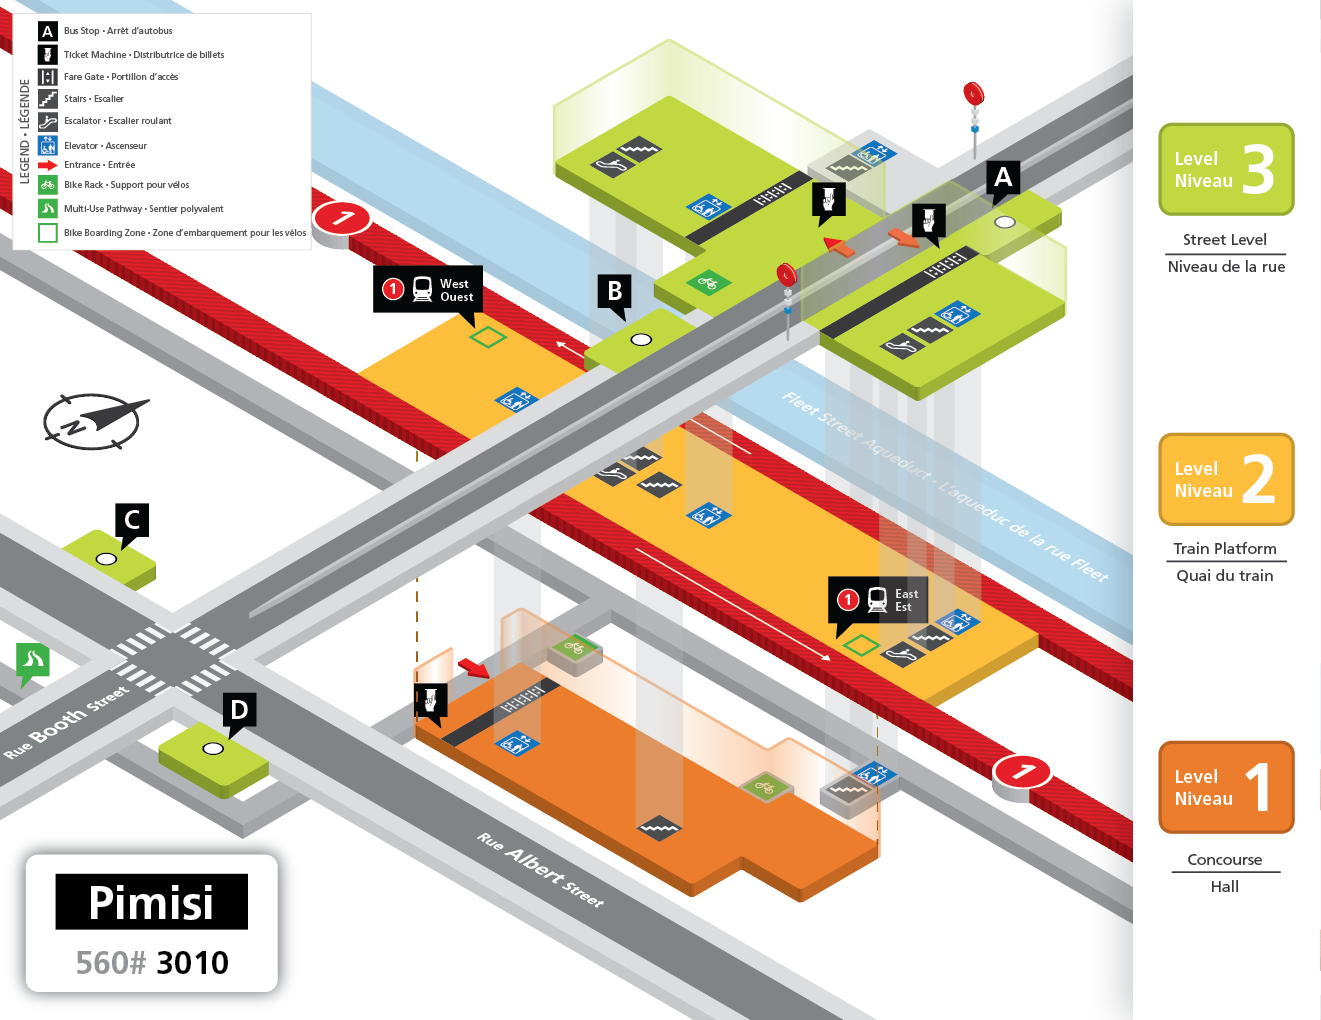 New Pimisi Station layout